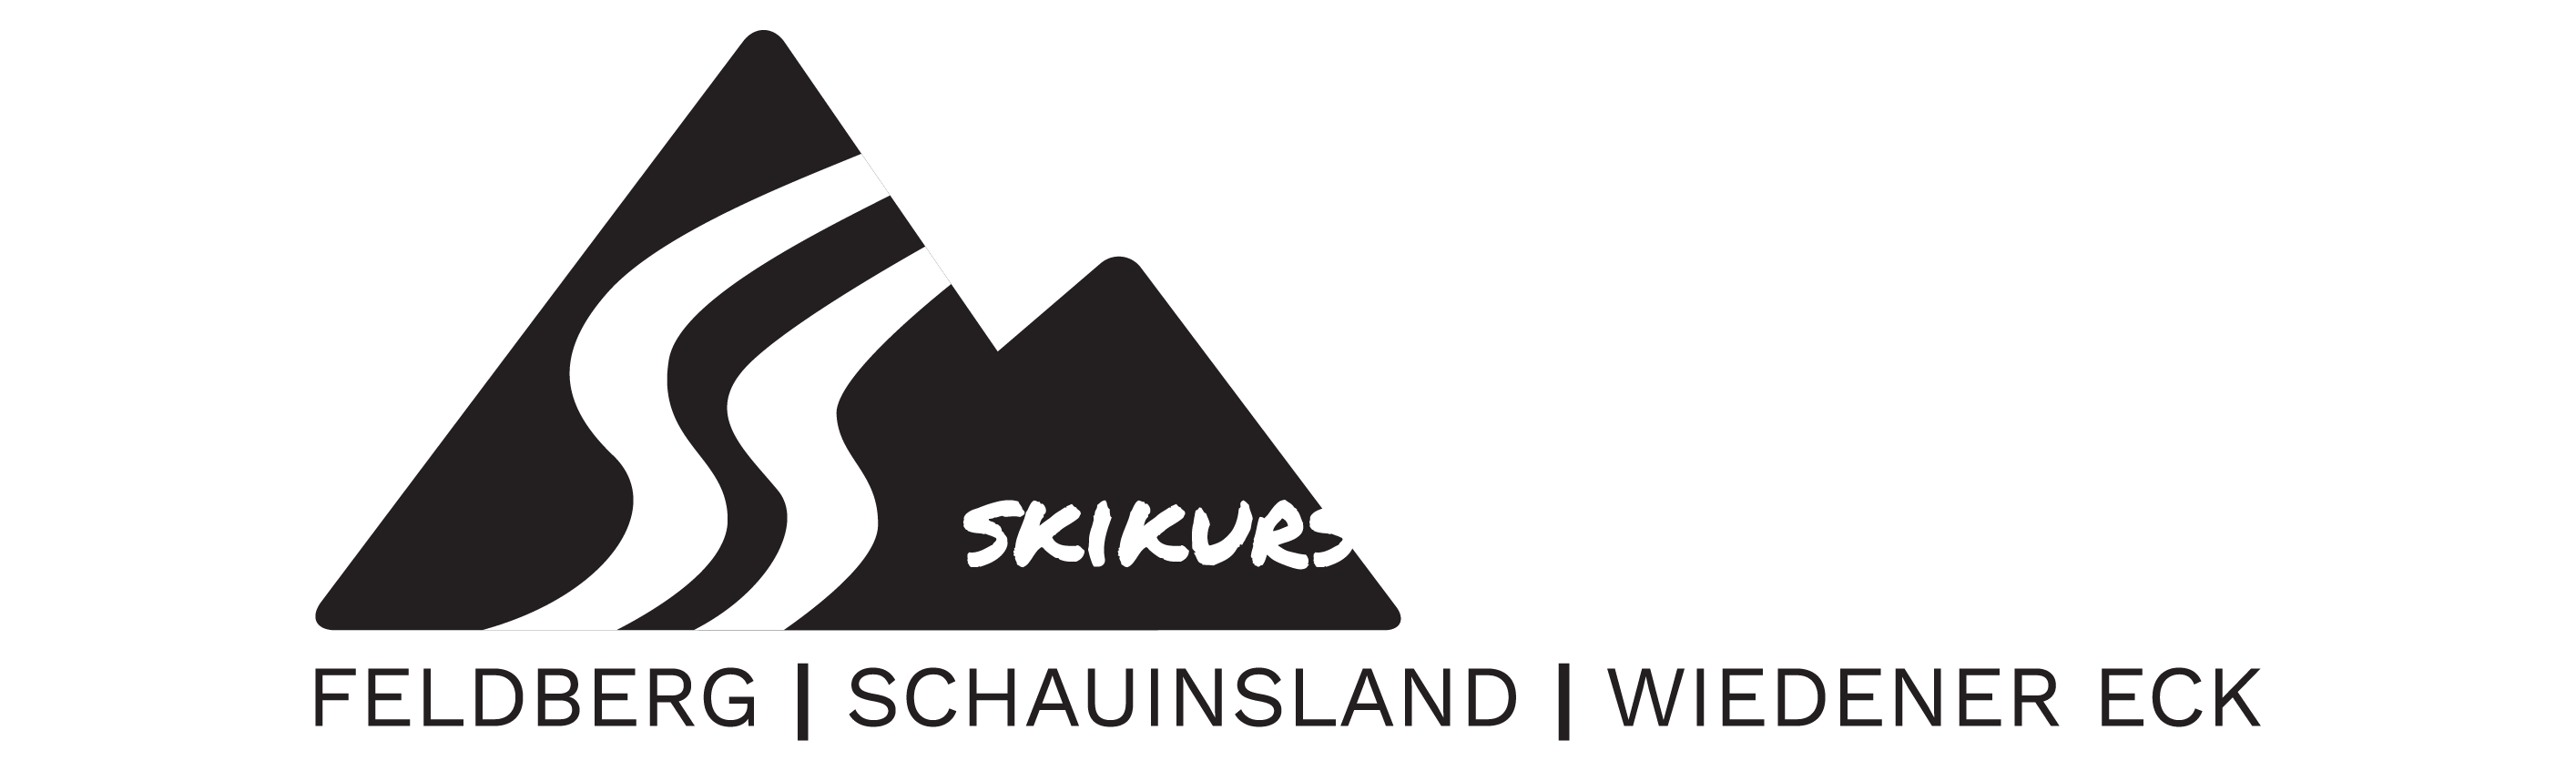 Skikurs Skilehrer Feldberg Skischule Schauinsland Wiedener Eck